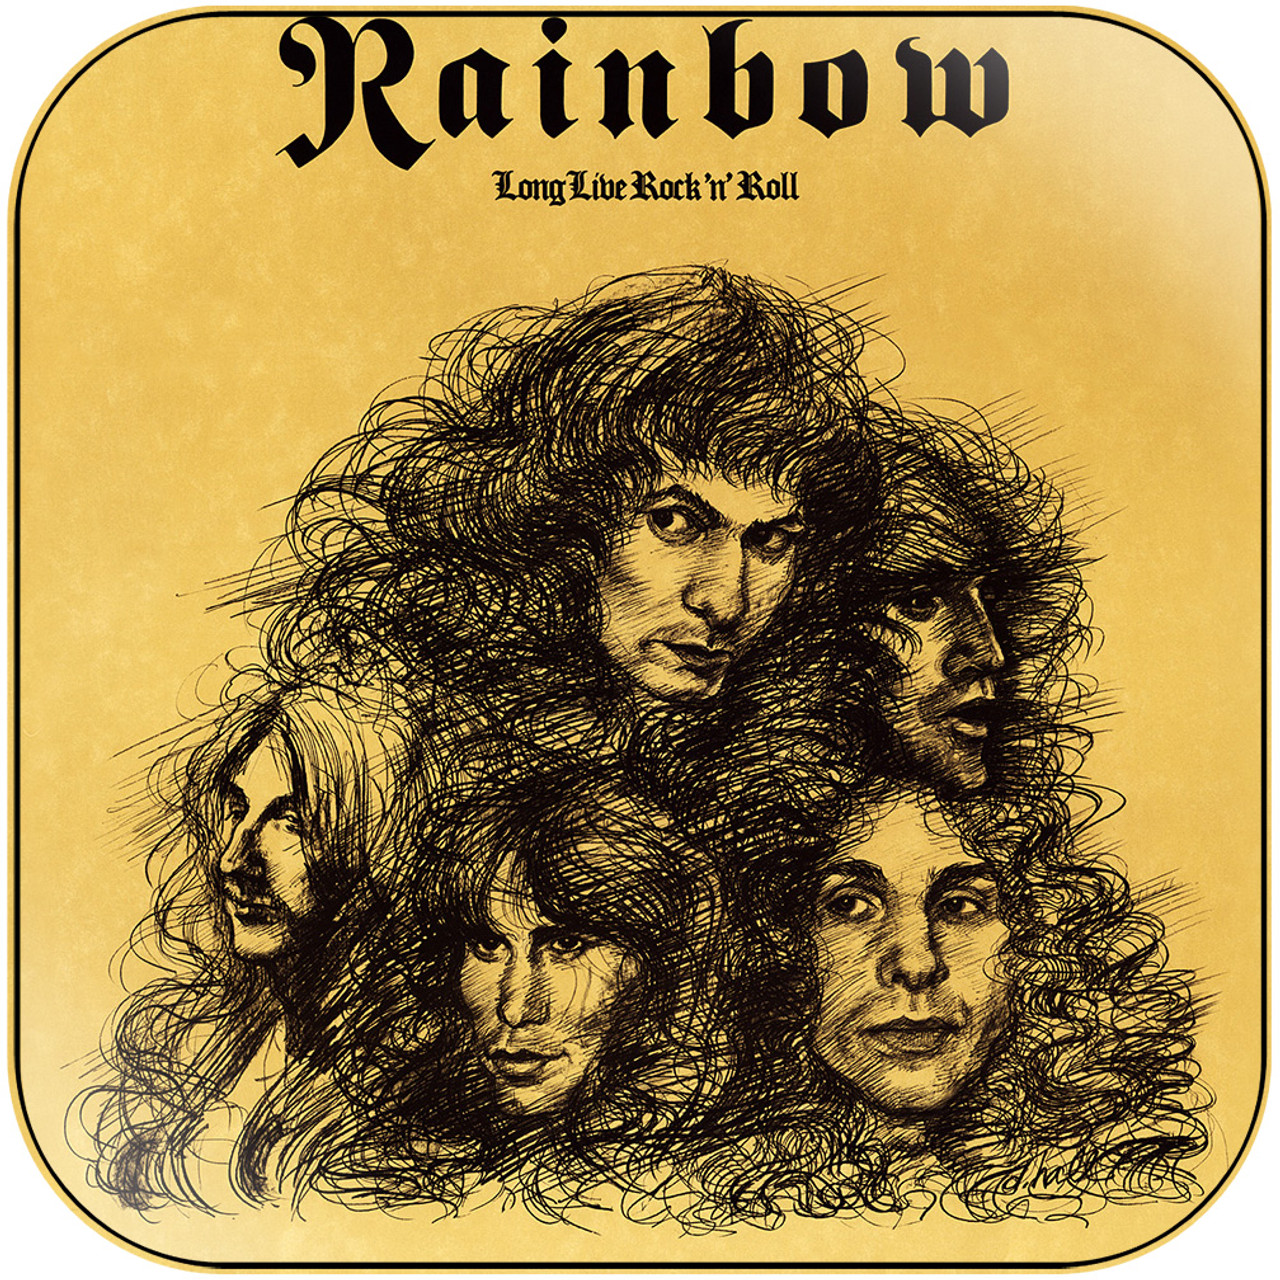 Rainbow - long live rock n roll-3 Album Cover Sticker Album Cover Sticker